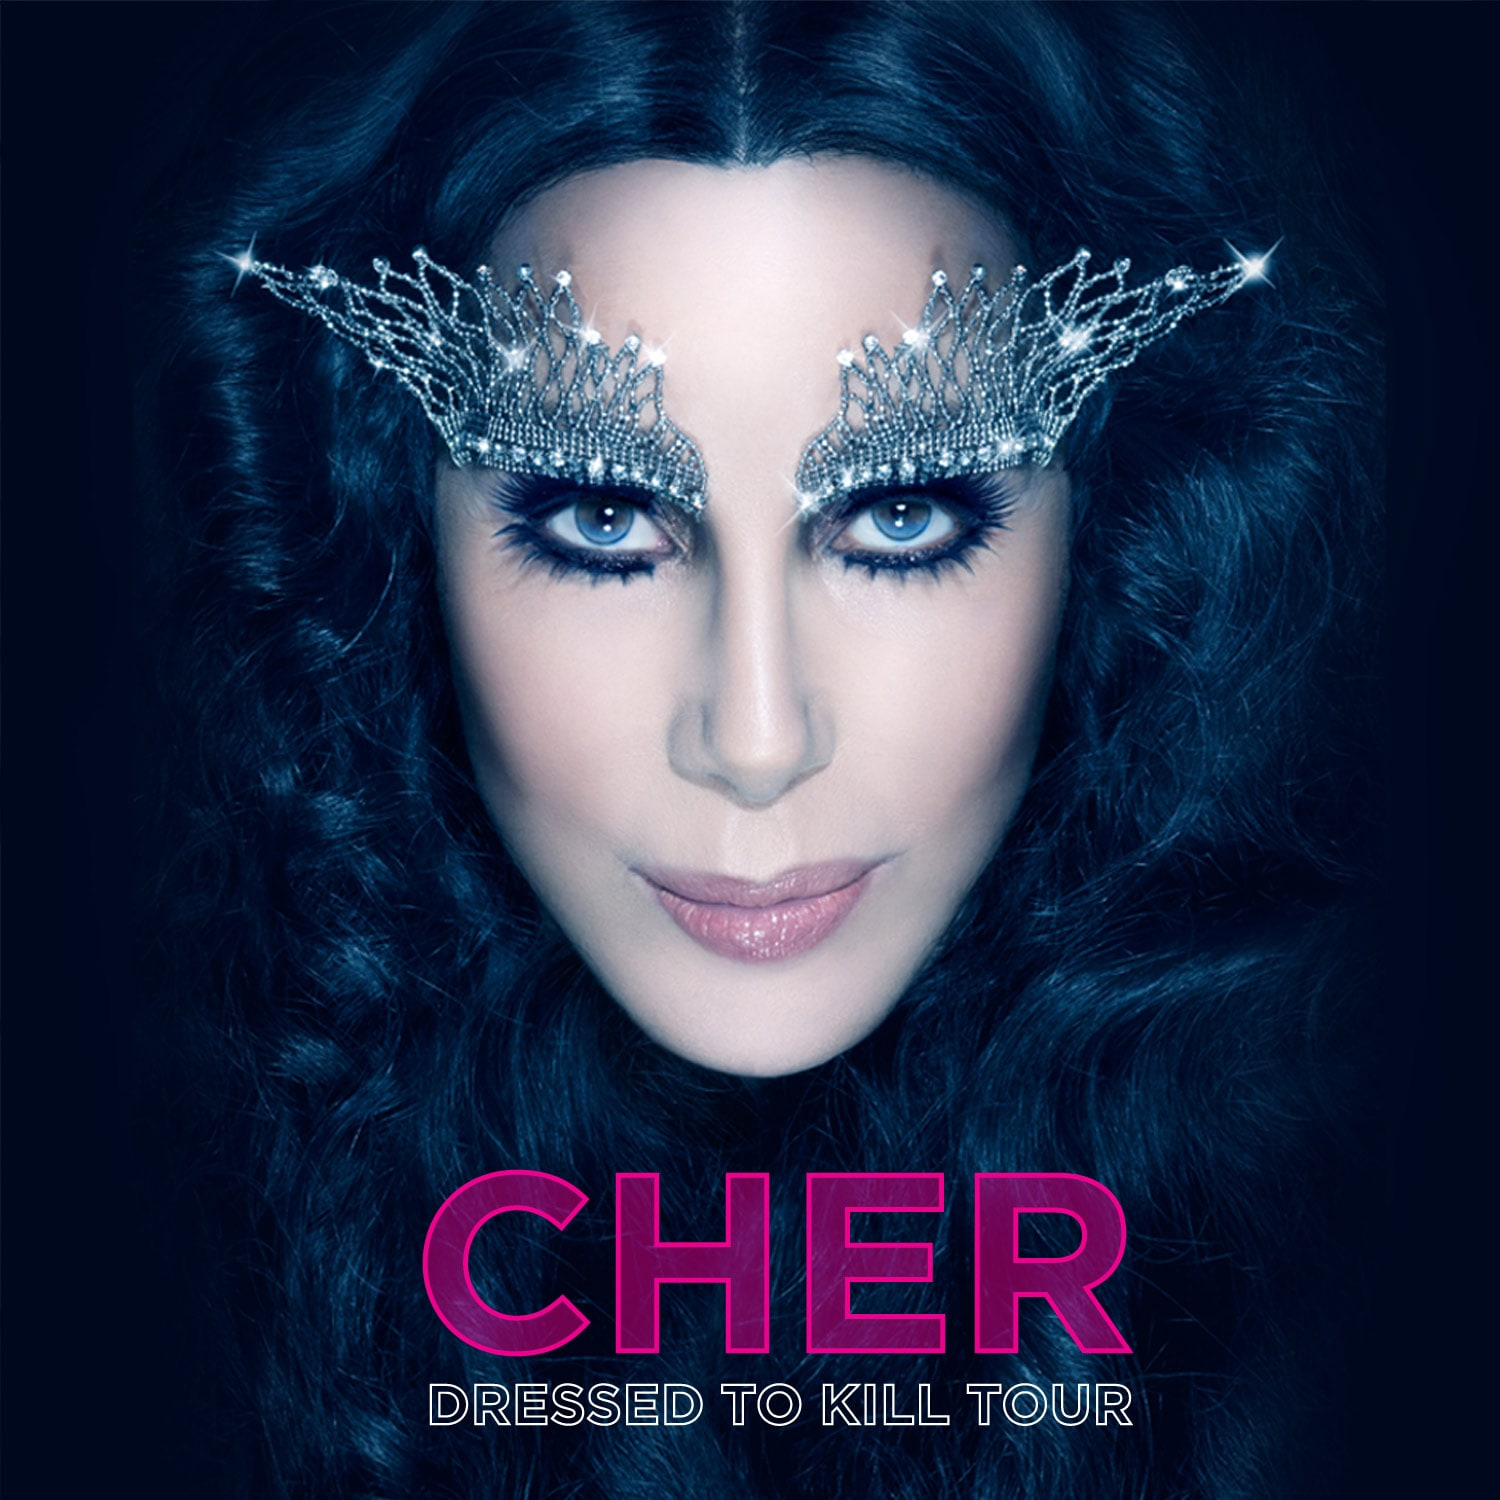 Cher Full hd wallpapers